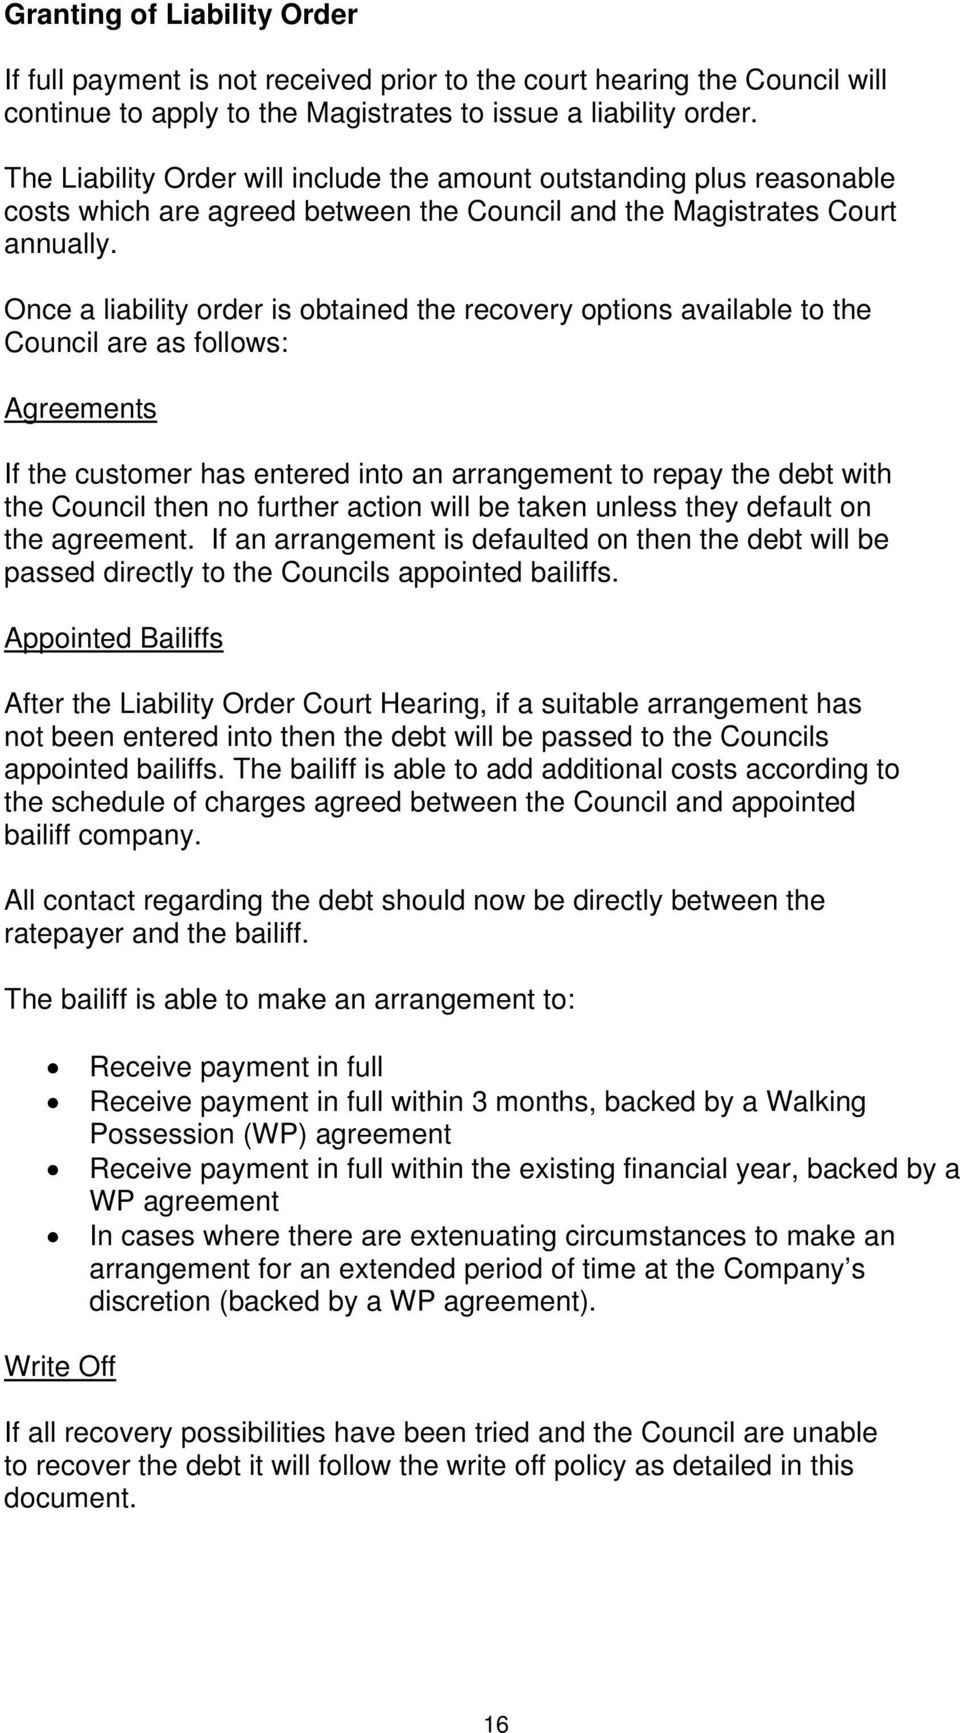 Once a liability order is obtained the recovery options available to the Council are as follows: Agreements If the customer has entered into an arrangement to repay the debt with the Council then no